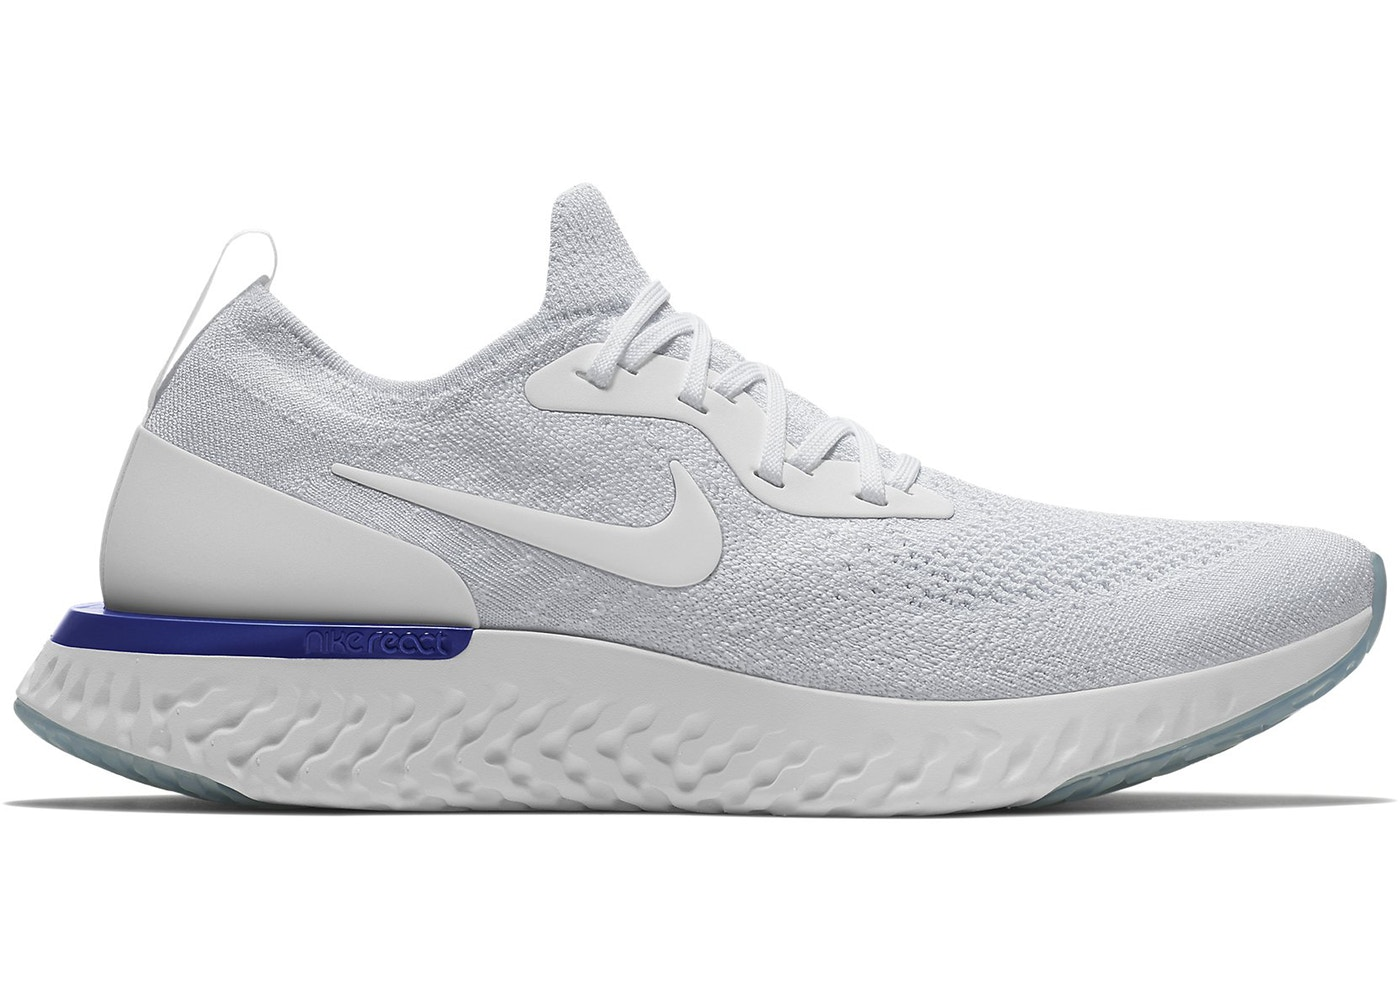 f8f7c1d8a134 Nike Epic React Flyknit White Racer Blue - AQ0067-100